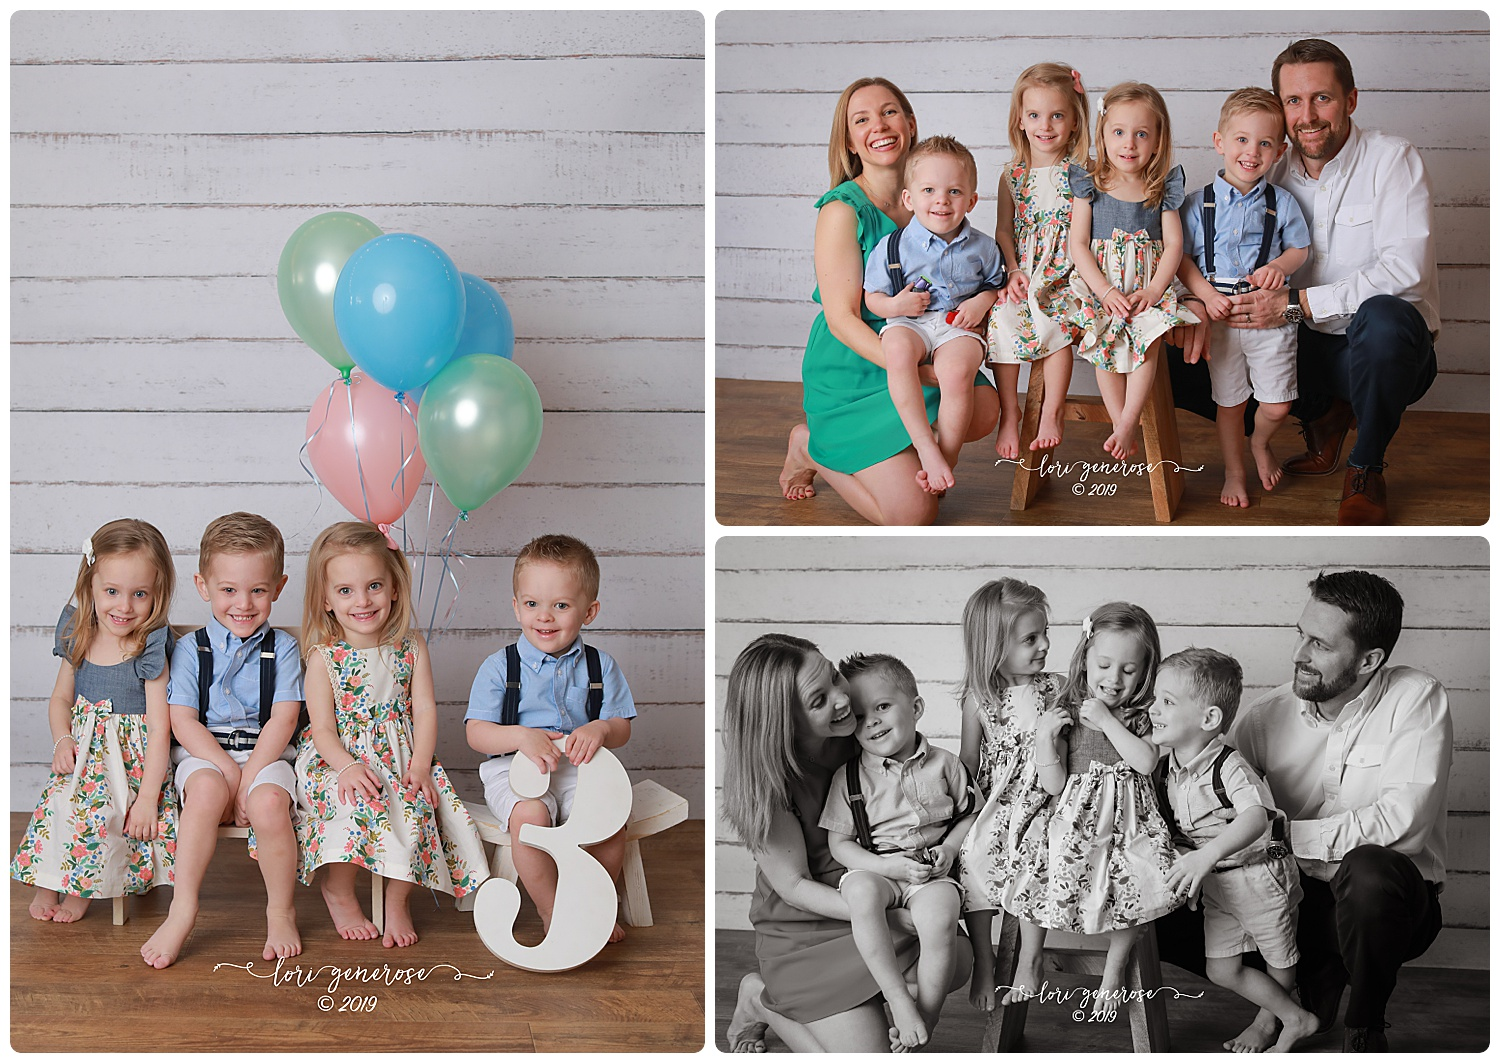 "When I see on my calendar ""quadruplet three year olds"" I think to myself, ""......well this could be interesting....!"" Let me tell you about this awesome family I got to meet 💚 Mom and Dad are patient and kind as all get out, easy going and had one goal which was to have all six of them in a photo and 'they all don't even have to be looking'. Left in the top right photo is Tucker, notice the cars in his hands... he scouted them out in the studio the minute he walked in! He was the toughest to get to smile because all he wanted to do was play with the cars but he couldn't resist my ""Hot Dog Song""! Next in that photo is Grace. She's a dancer. She wanted to see the photos on the back of my camera and thought my ""Baby Shark"" was pretty spot on. Then there's Caroline, a little more reserved but still a little silly. She liked it best when she was sitting on the bench with her sissy and she liked my fake sneeze trick. And then there's Cole. He's the leader of the group from what I can tell and the class clown. The silliest of all with zero percent shyness. He was sneak attack tickling me every chance he got, sitting on my lap while I photographed his siblings and he was a pro at posing from the word go. I'd say this is pretty good for their first professional family photo considering no photoshopping was needed. To mom and dad, I'm so happy I could be the first one to give you a photo that you will look at forever with feelings of happiness that will only grow stronger as the days go by. Life is crazy... but it's so much more beautiful than crazy. These are the days. So happy I got to meet these guys. They brought me more joy than I can even describe in words 💕"